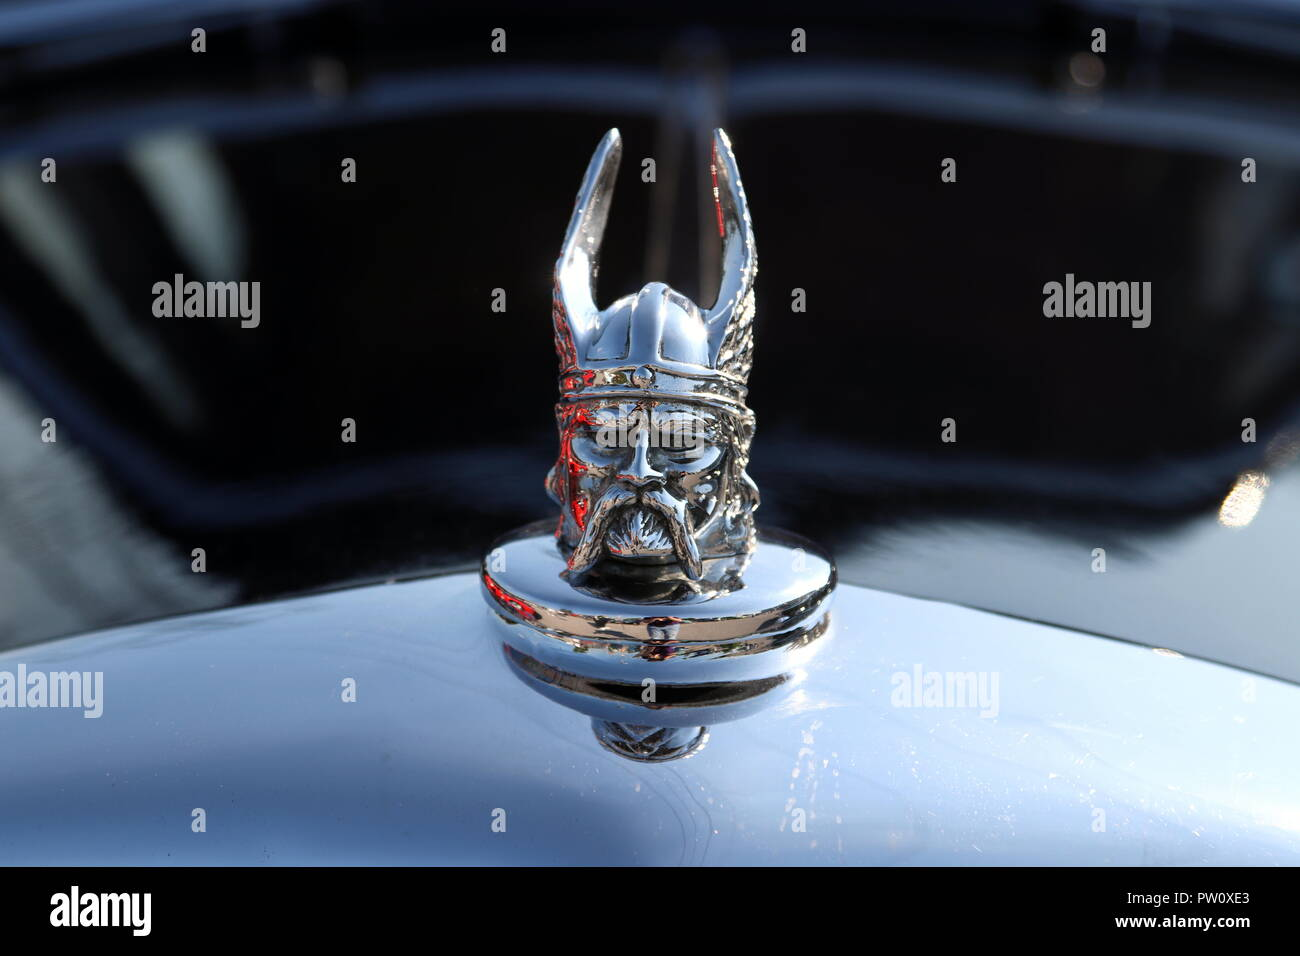 Viking hood ornament on a Rover car - Stock Image